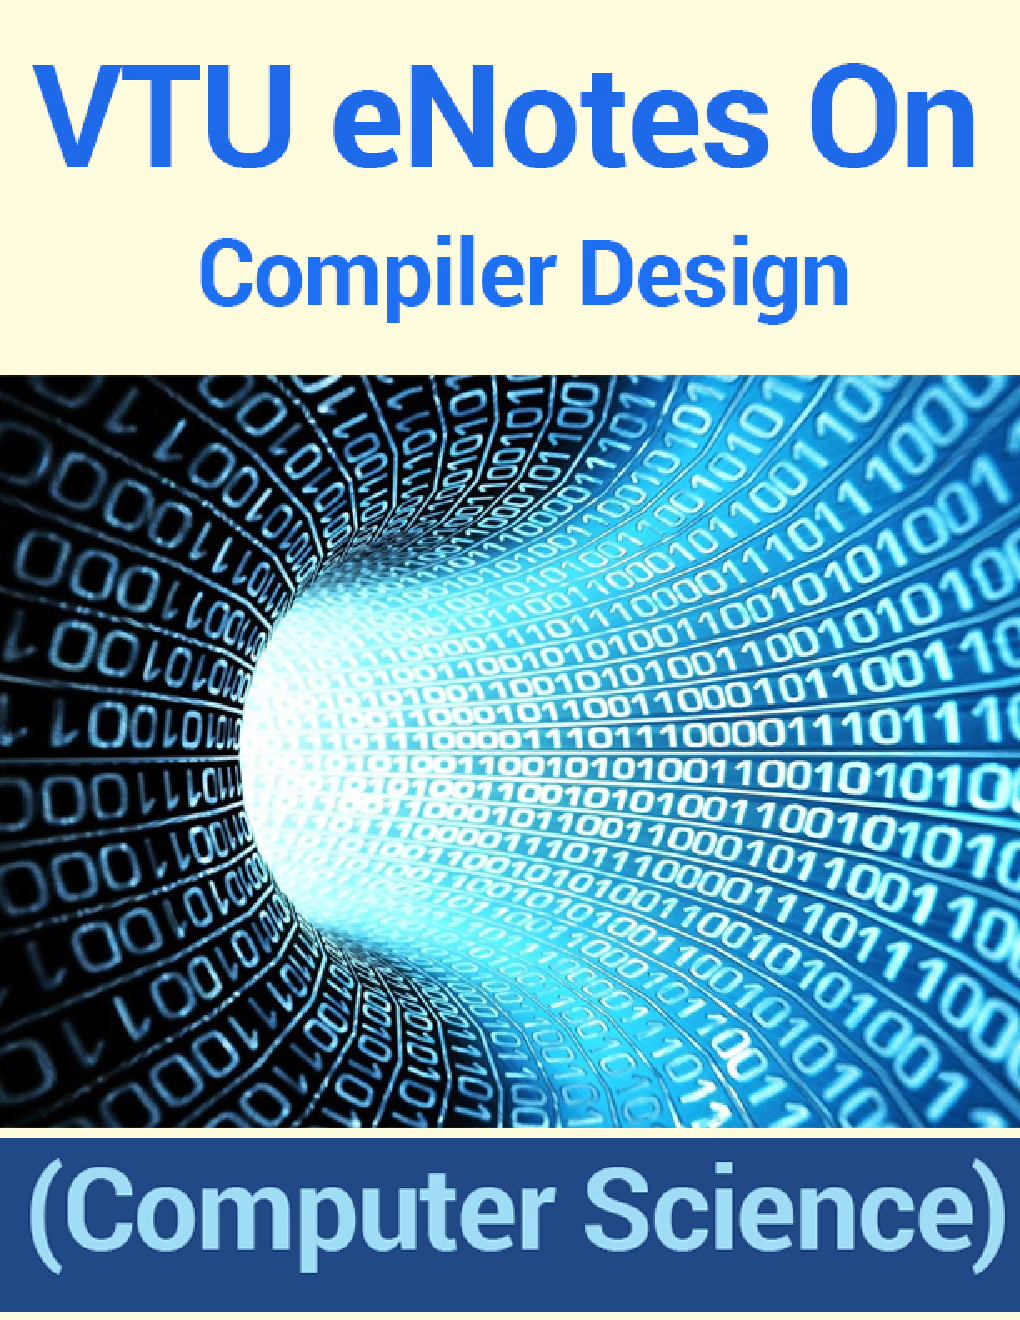 VTUeNotes OnCompiler Design(Computer Science) - Page 1